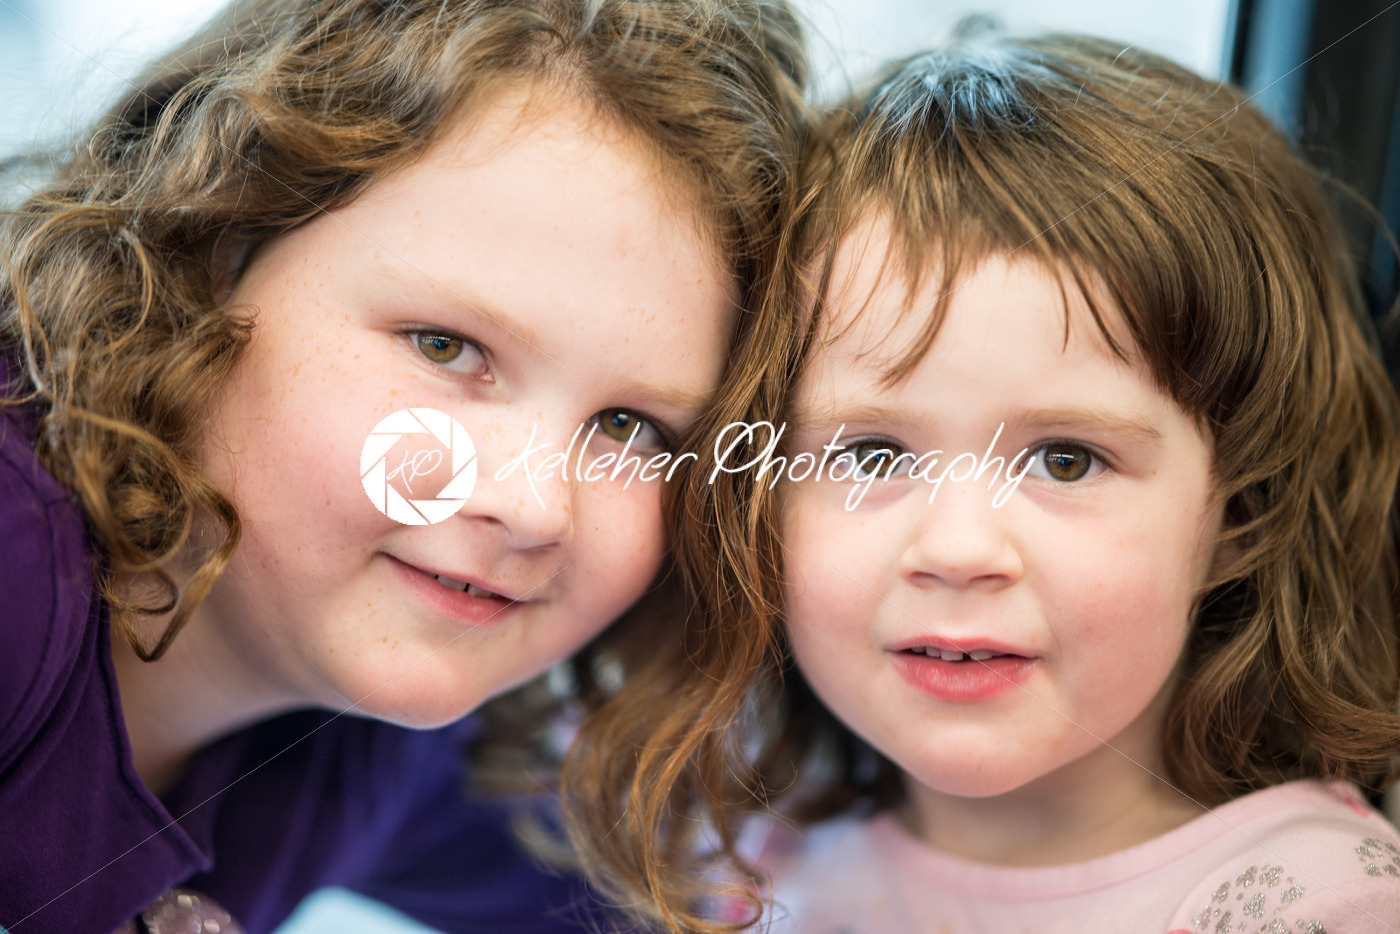 Young sibling girls portrait looking and smiling at the camera. - Kelleher Photography Store